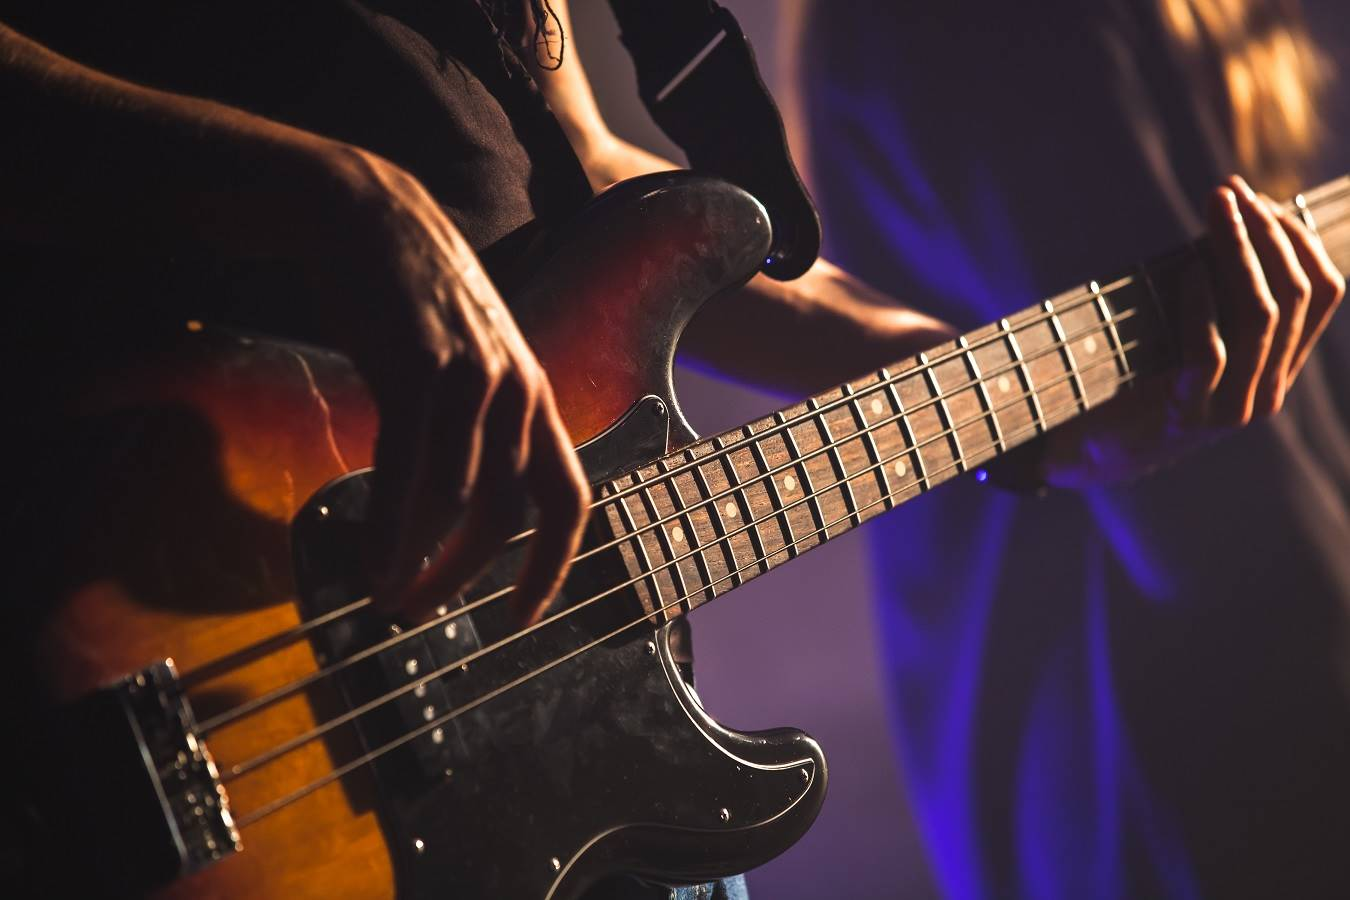 Closeup photo of bass guitar player hands, soft selective focus, live music theme